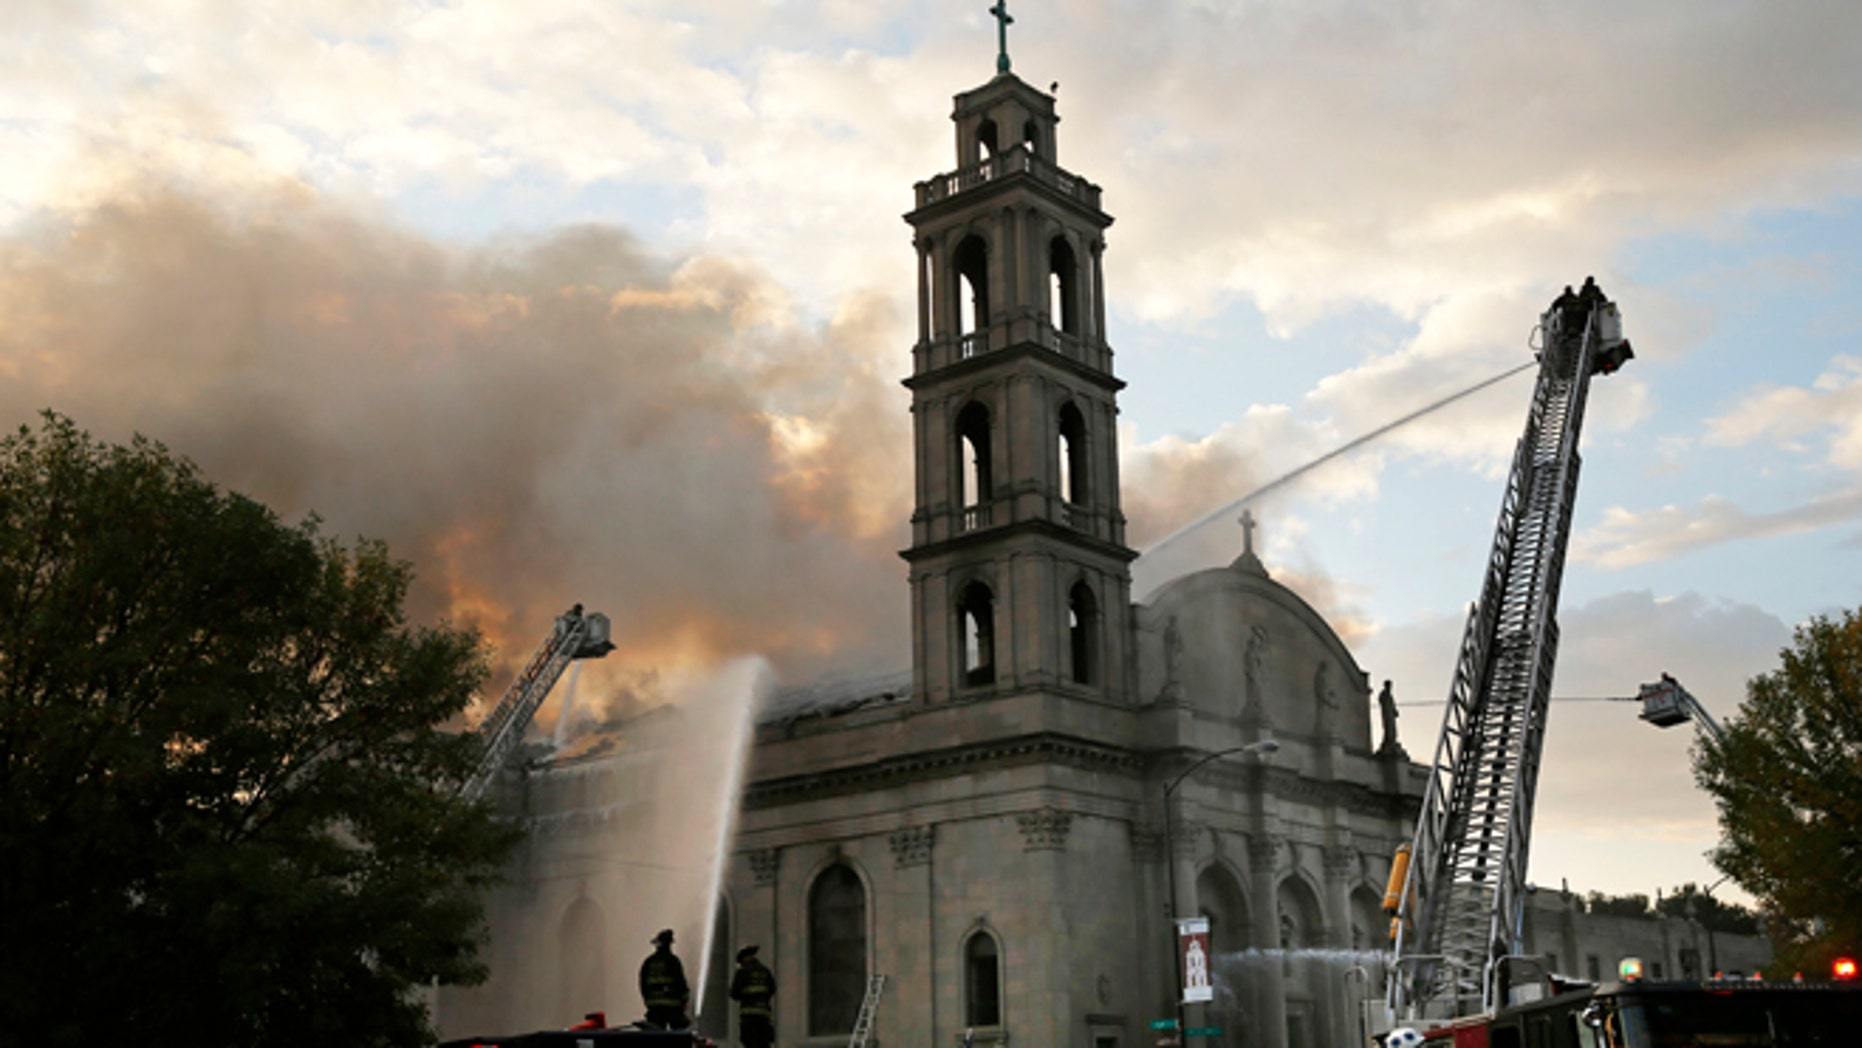 Chicago firefighters work at the scene of an extra-alarm fire at Shrine of Christ the King Church.